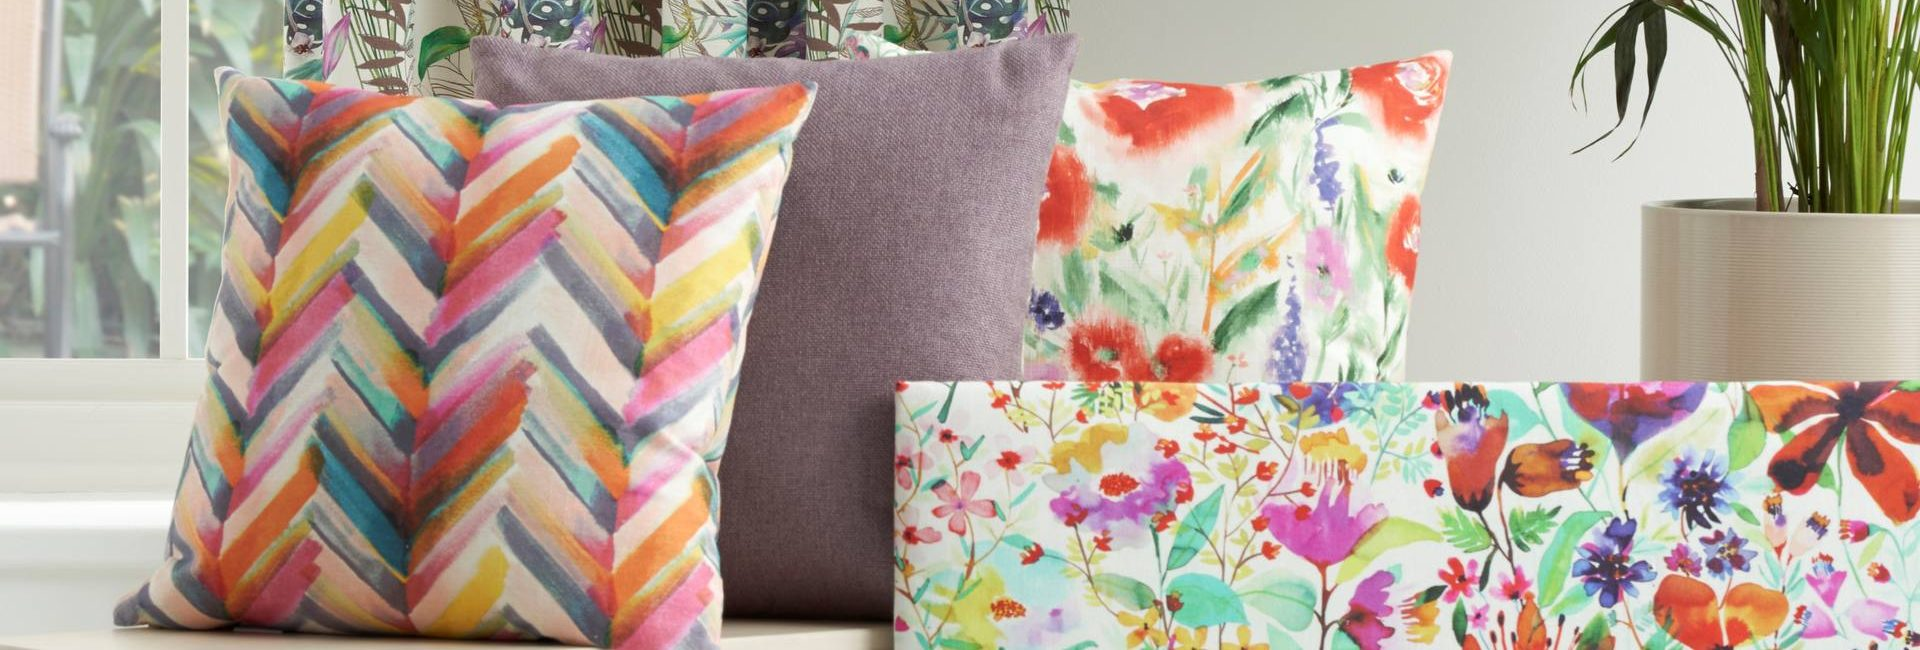 Chess Designs Jardin fabric collection shown as cushions - available from Fabric Gallery and Interiors in Dunnington, York